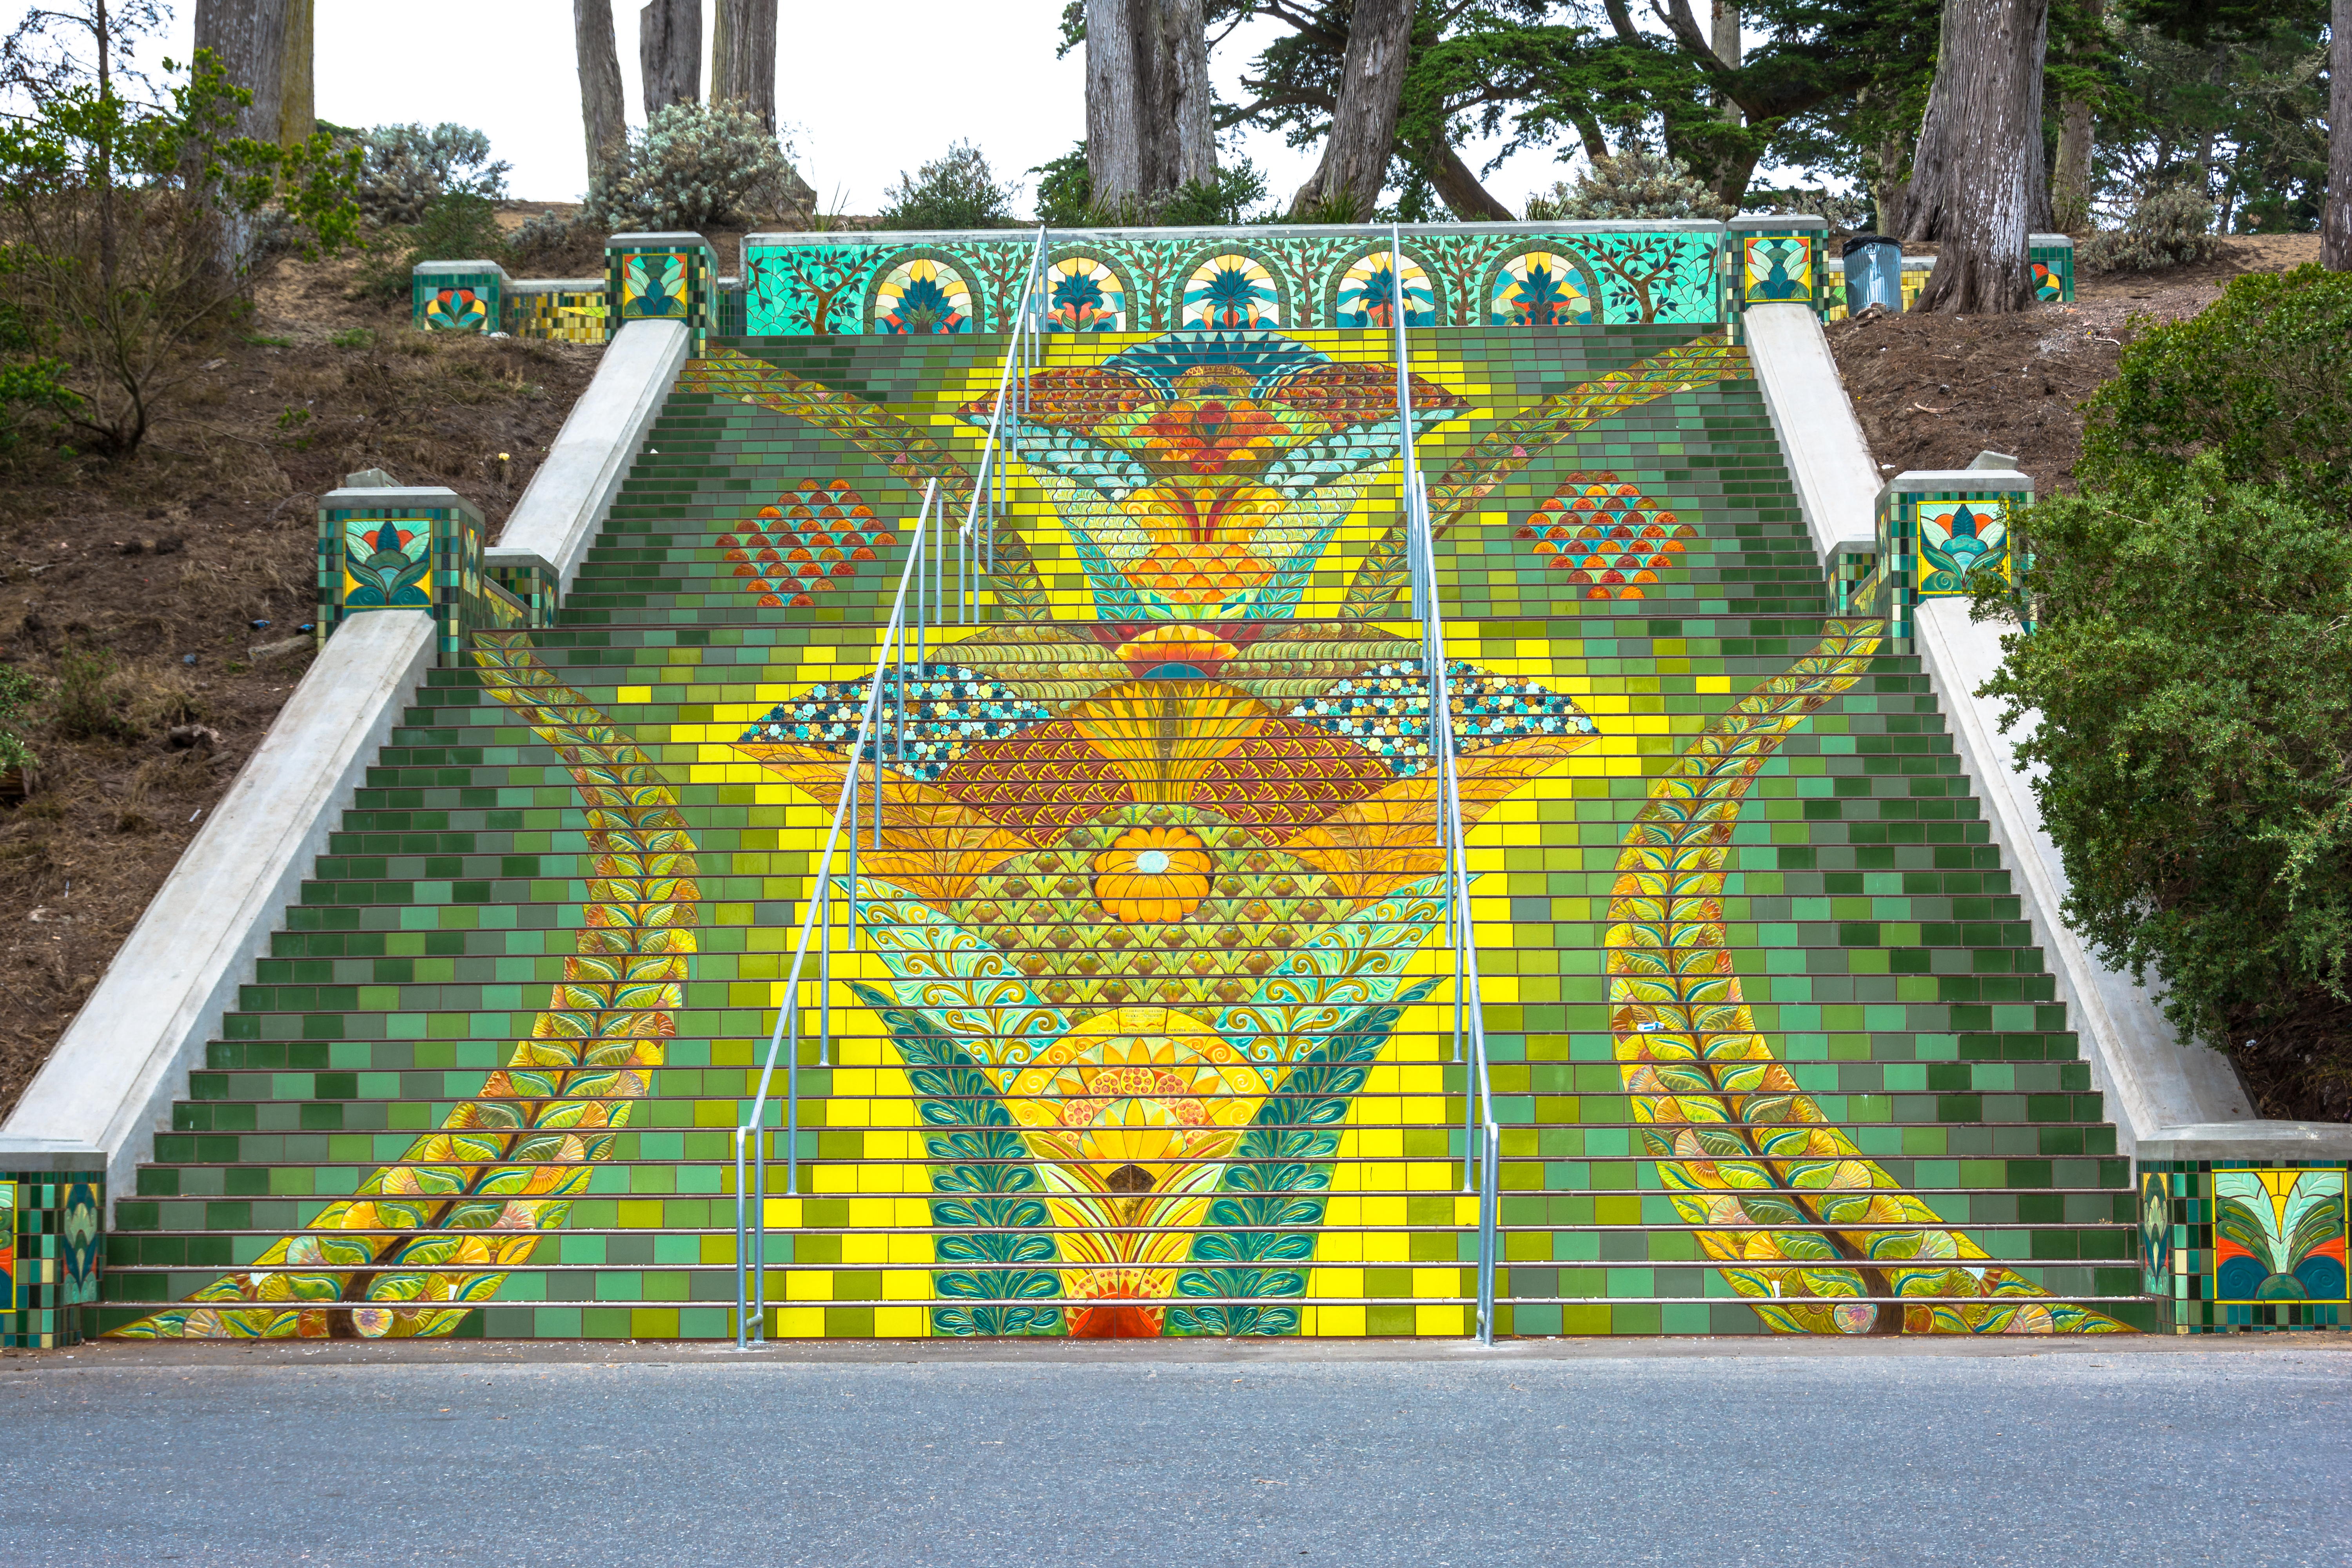 15 beautiful urban staircases in the U.S.